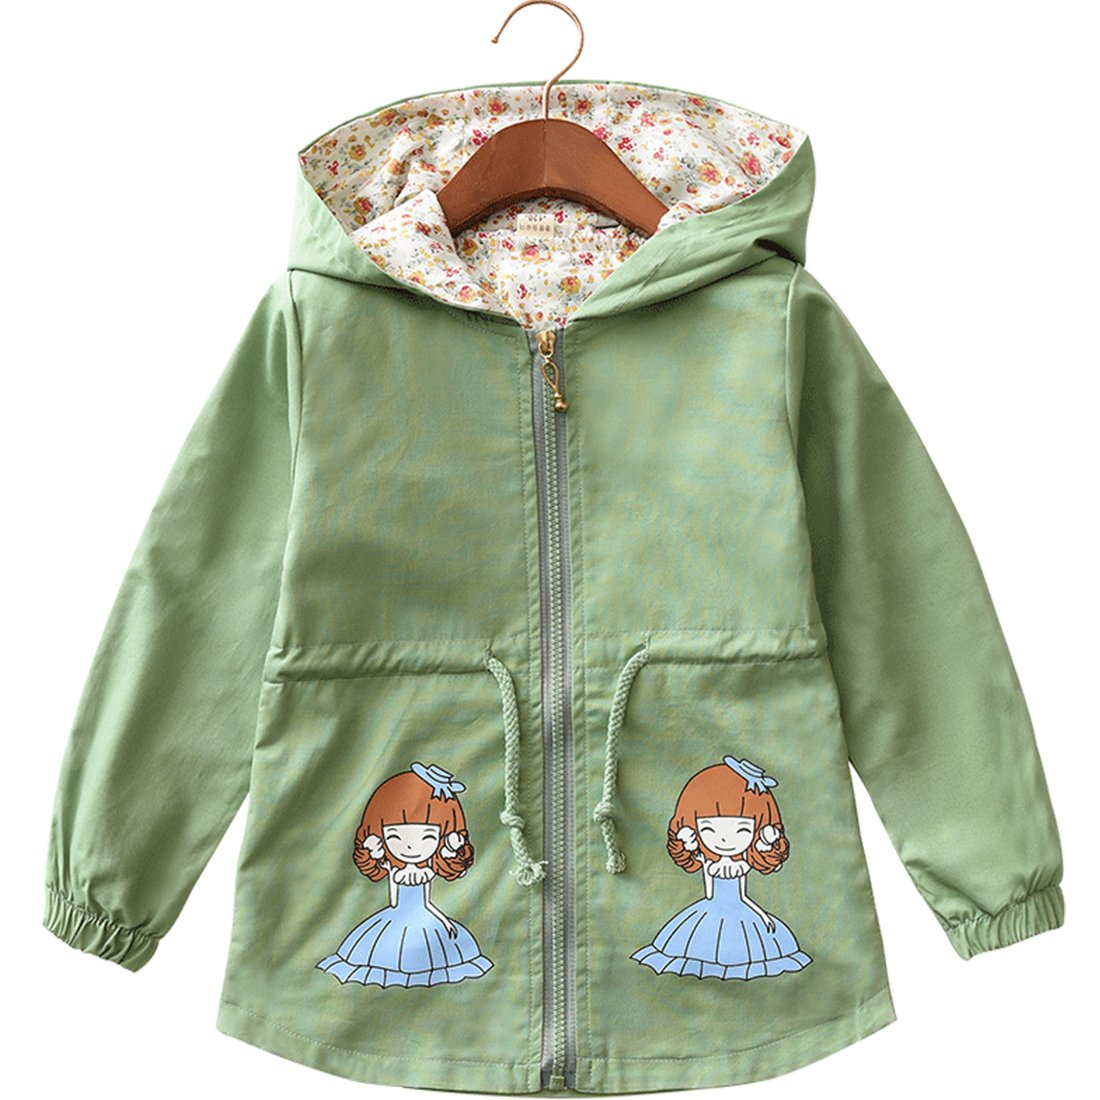 LE CHARME Girls Zip Jacket Winter Lightweight Coat Hooded Outwear Green 3-4Y 110